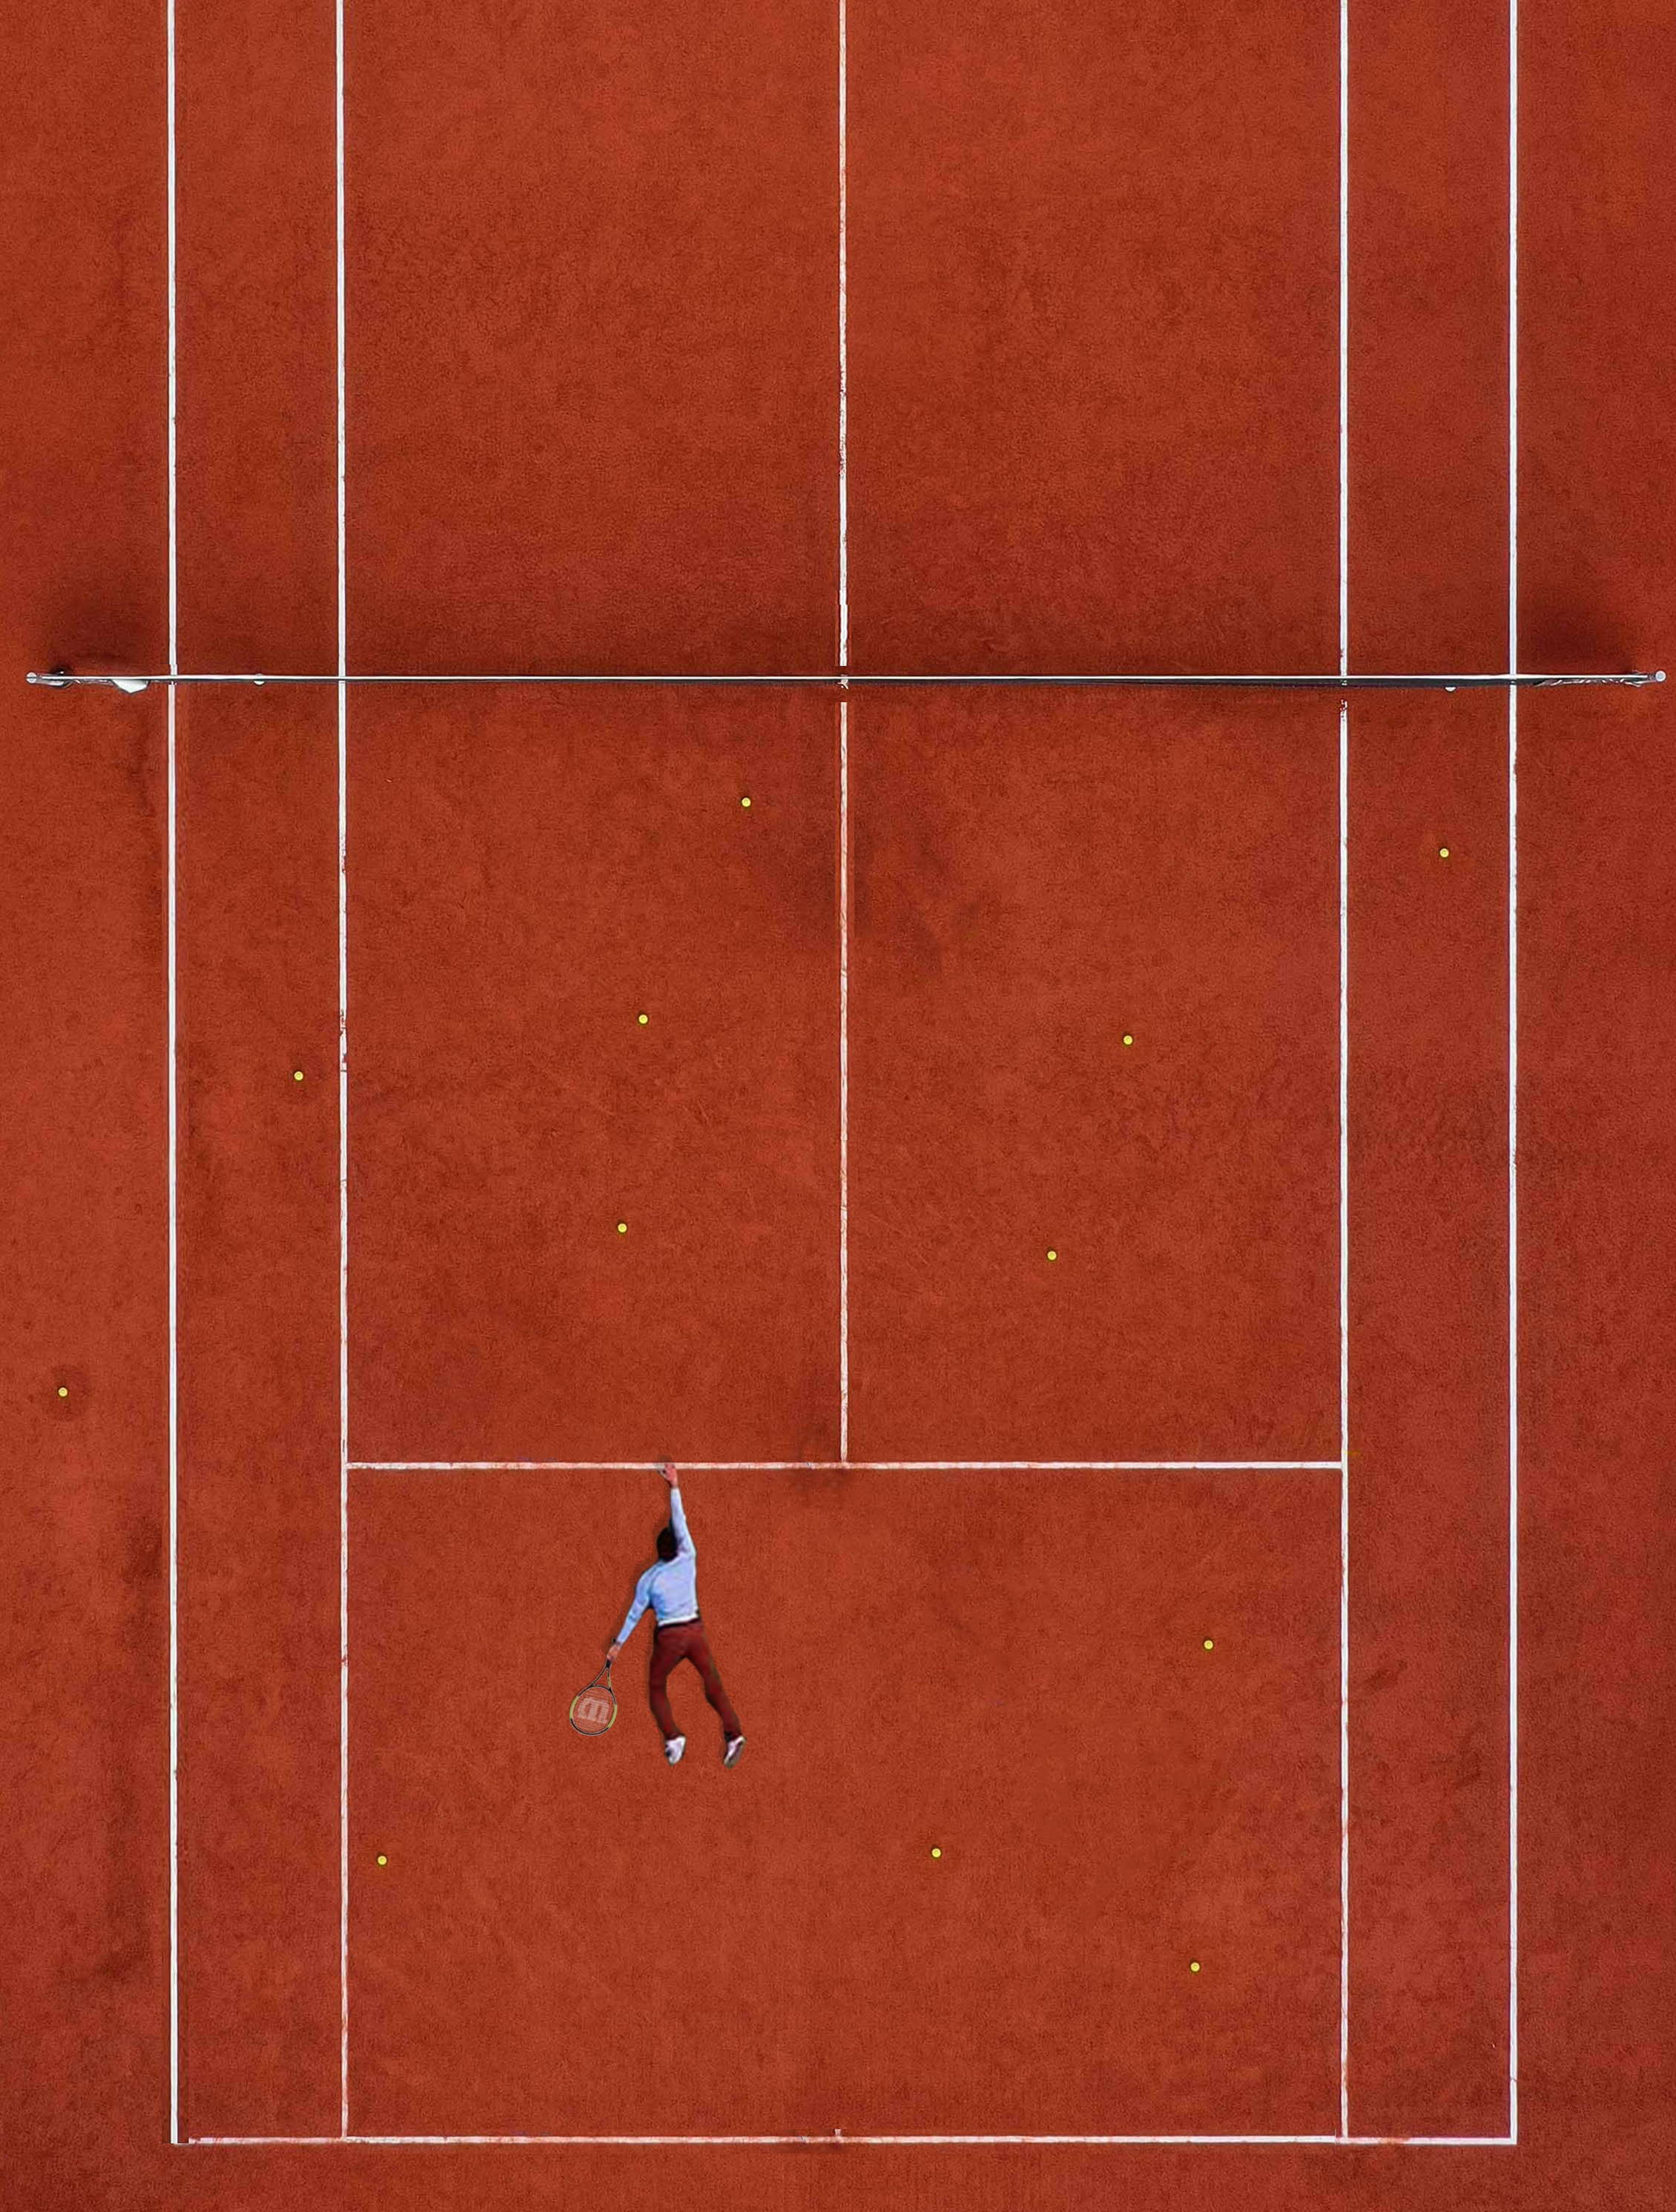 man lying on tennis field